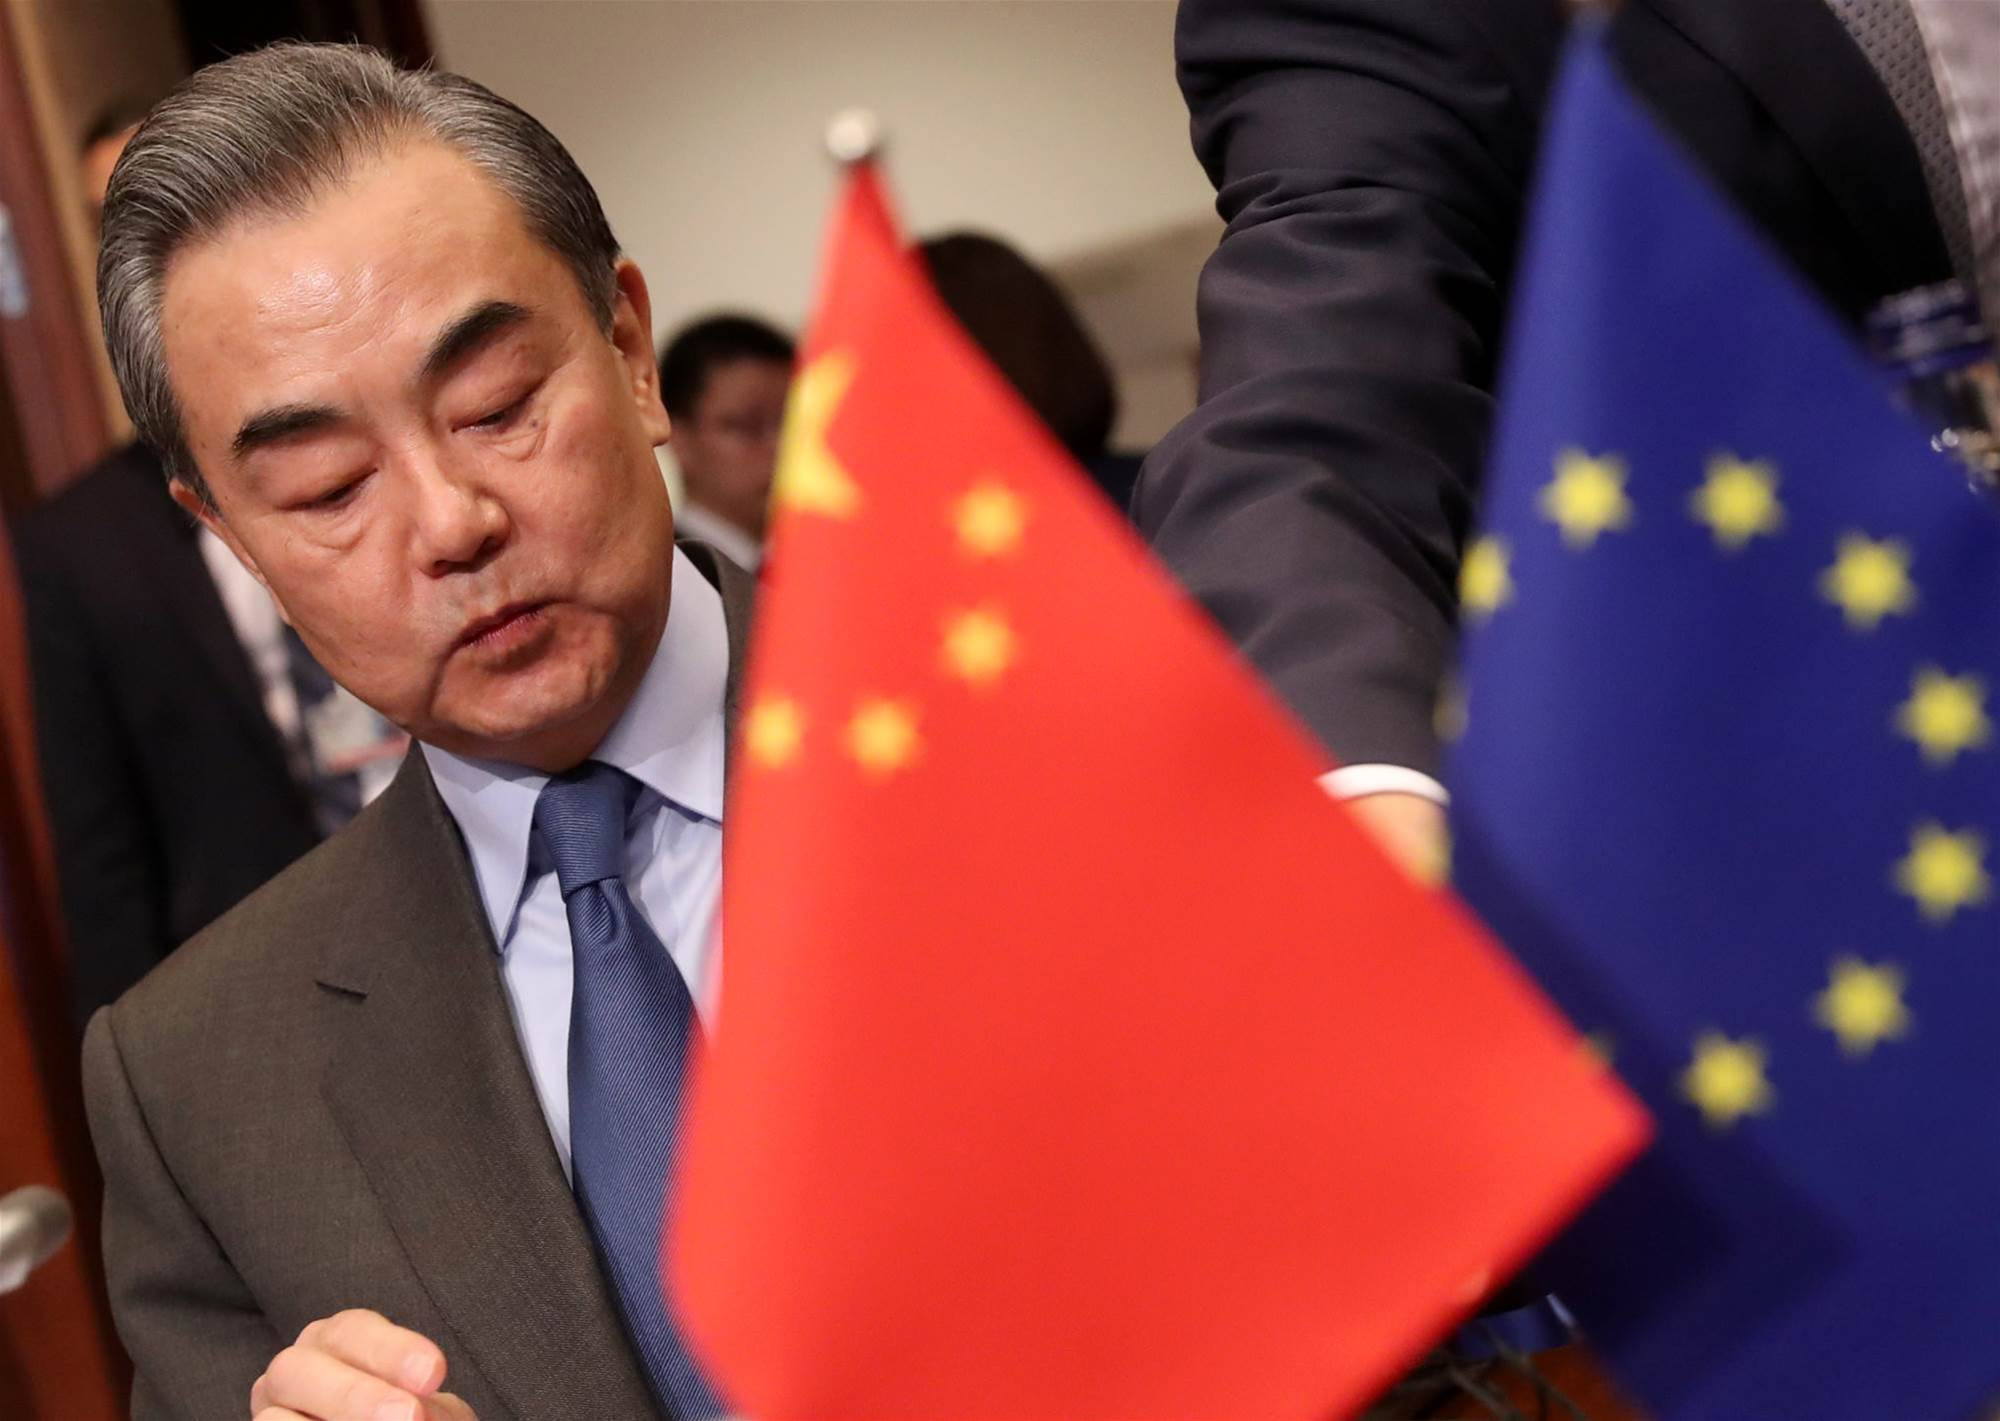 China rejects 'abnormal' US spying concerns as EU pushes trade